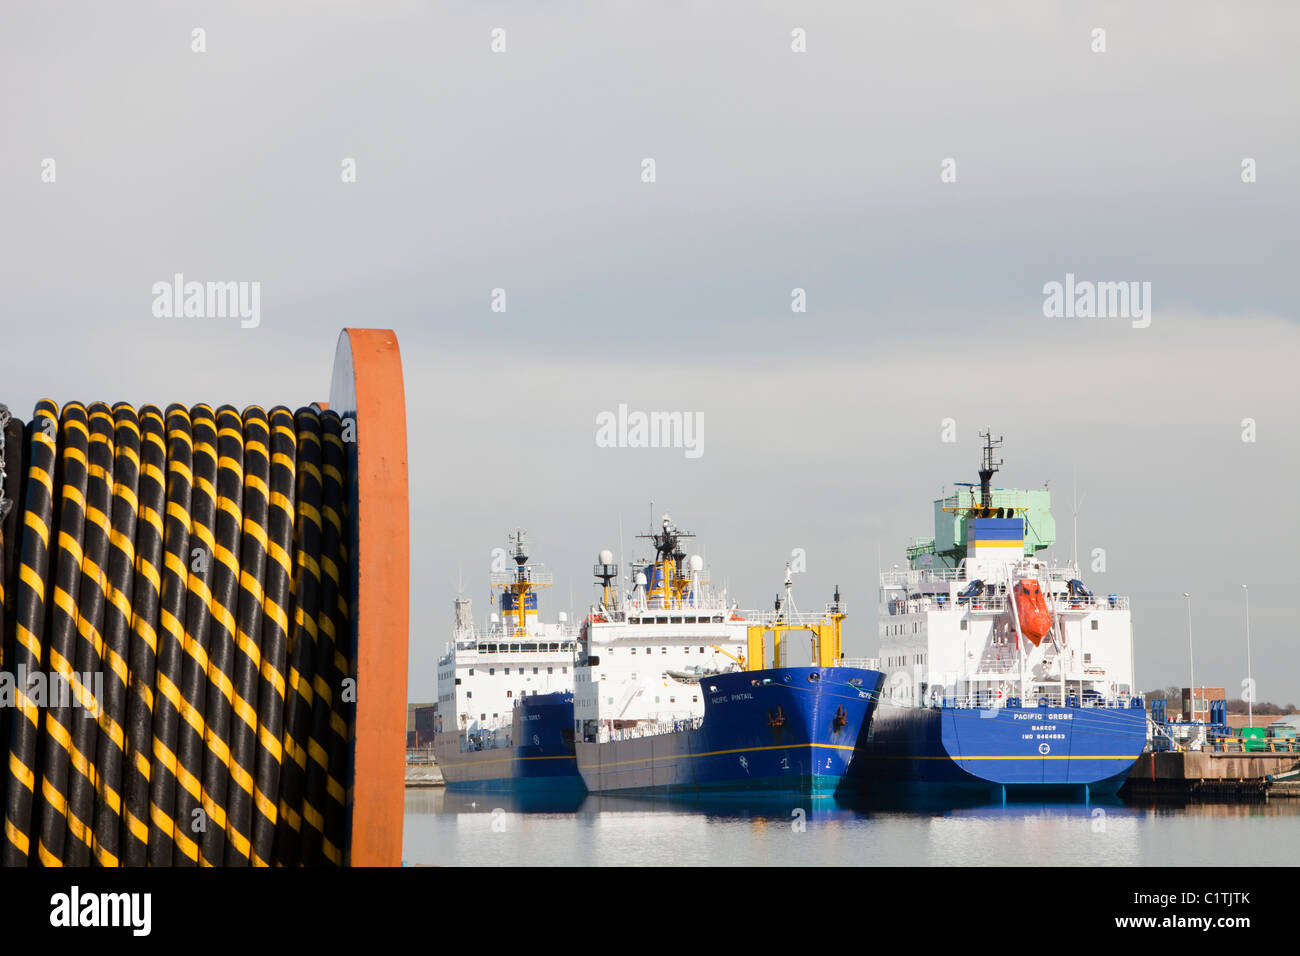 Undersea electric cabling on the dockside in Barrow in Furness, Cumbria for the Walney offshore wind farm. - Stock Image